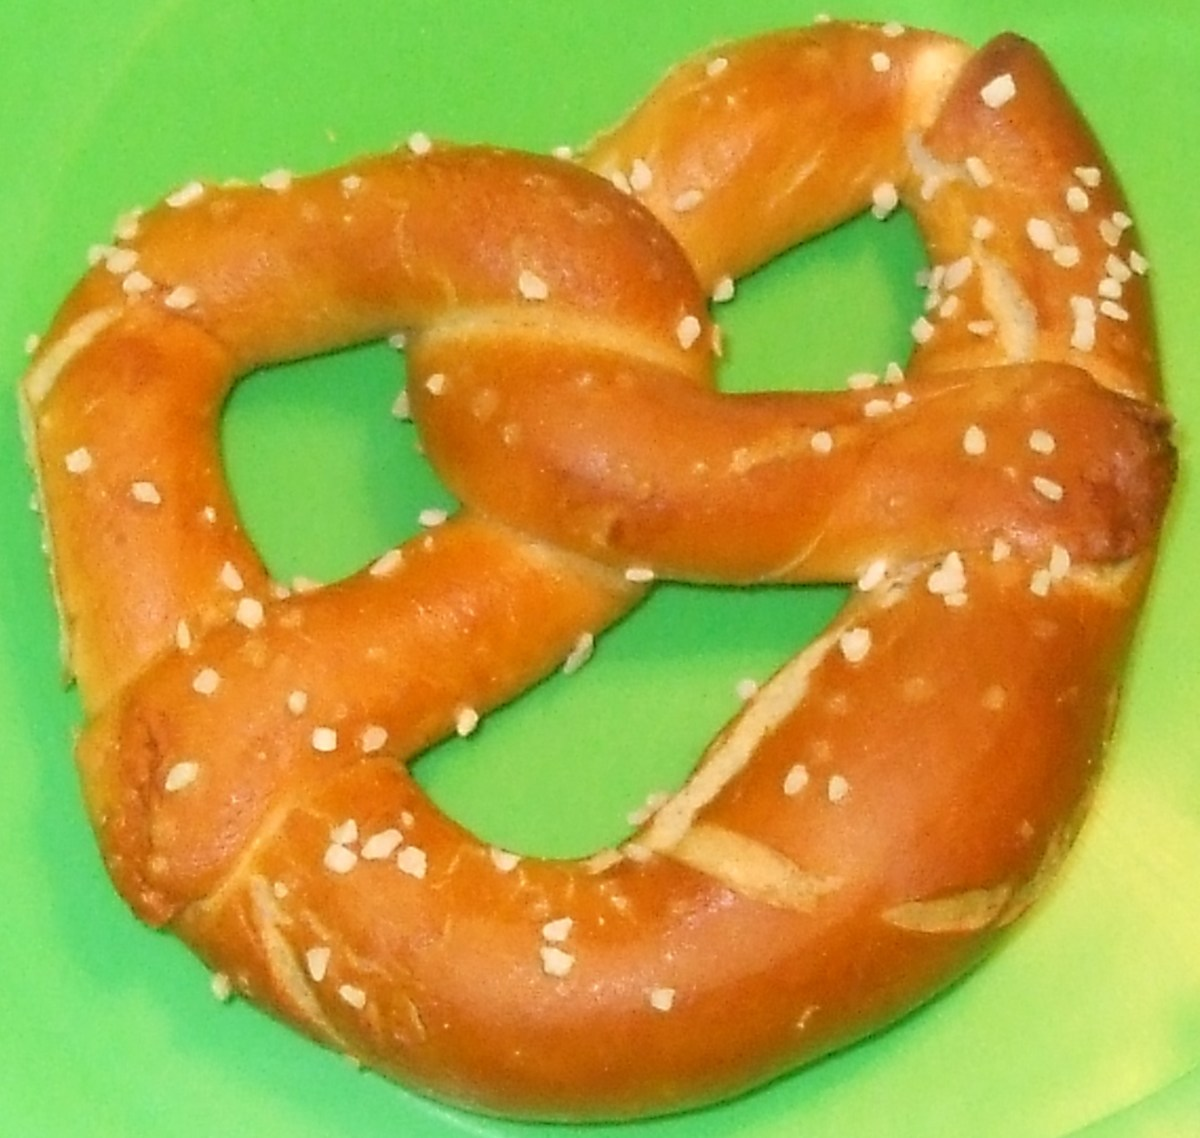 A single beautiful hard beer pretzel from Shuey's in Lebanon, PA.